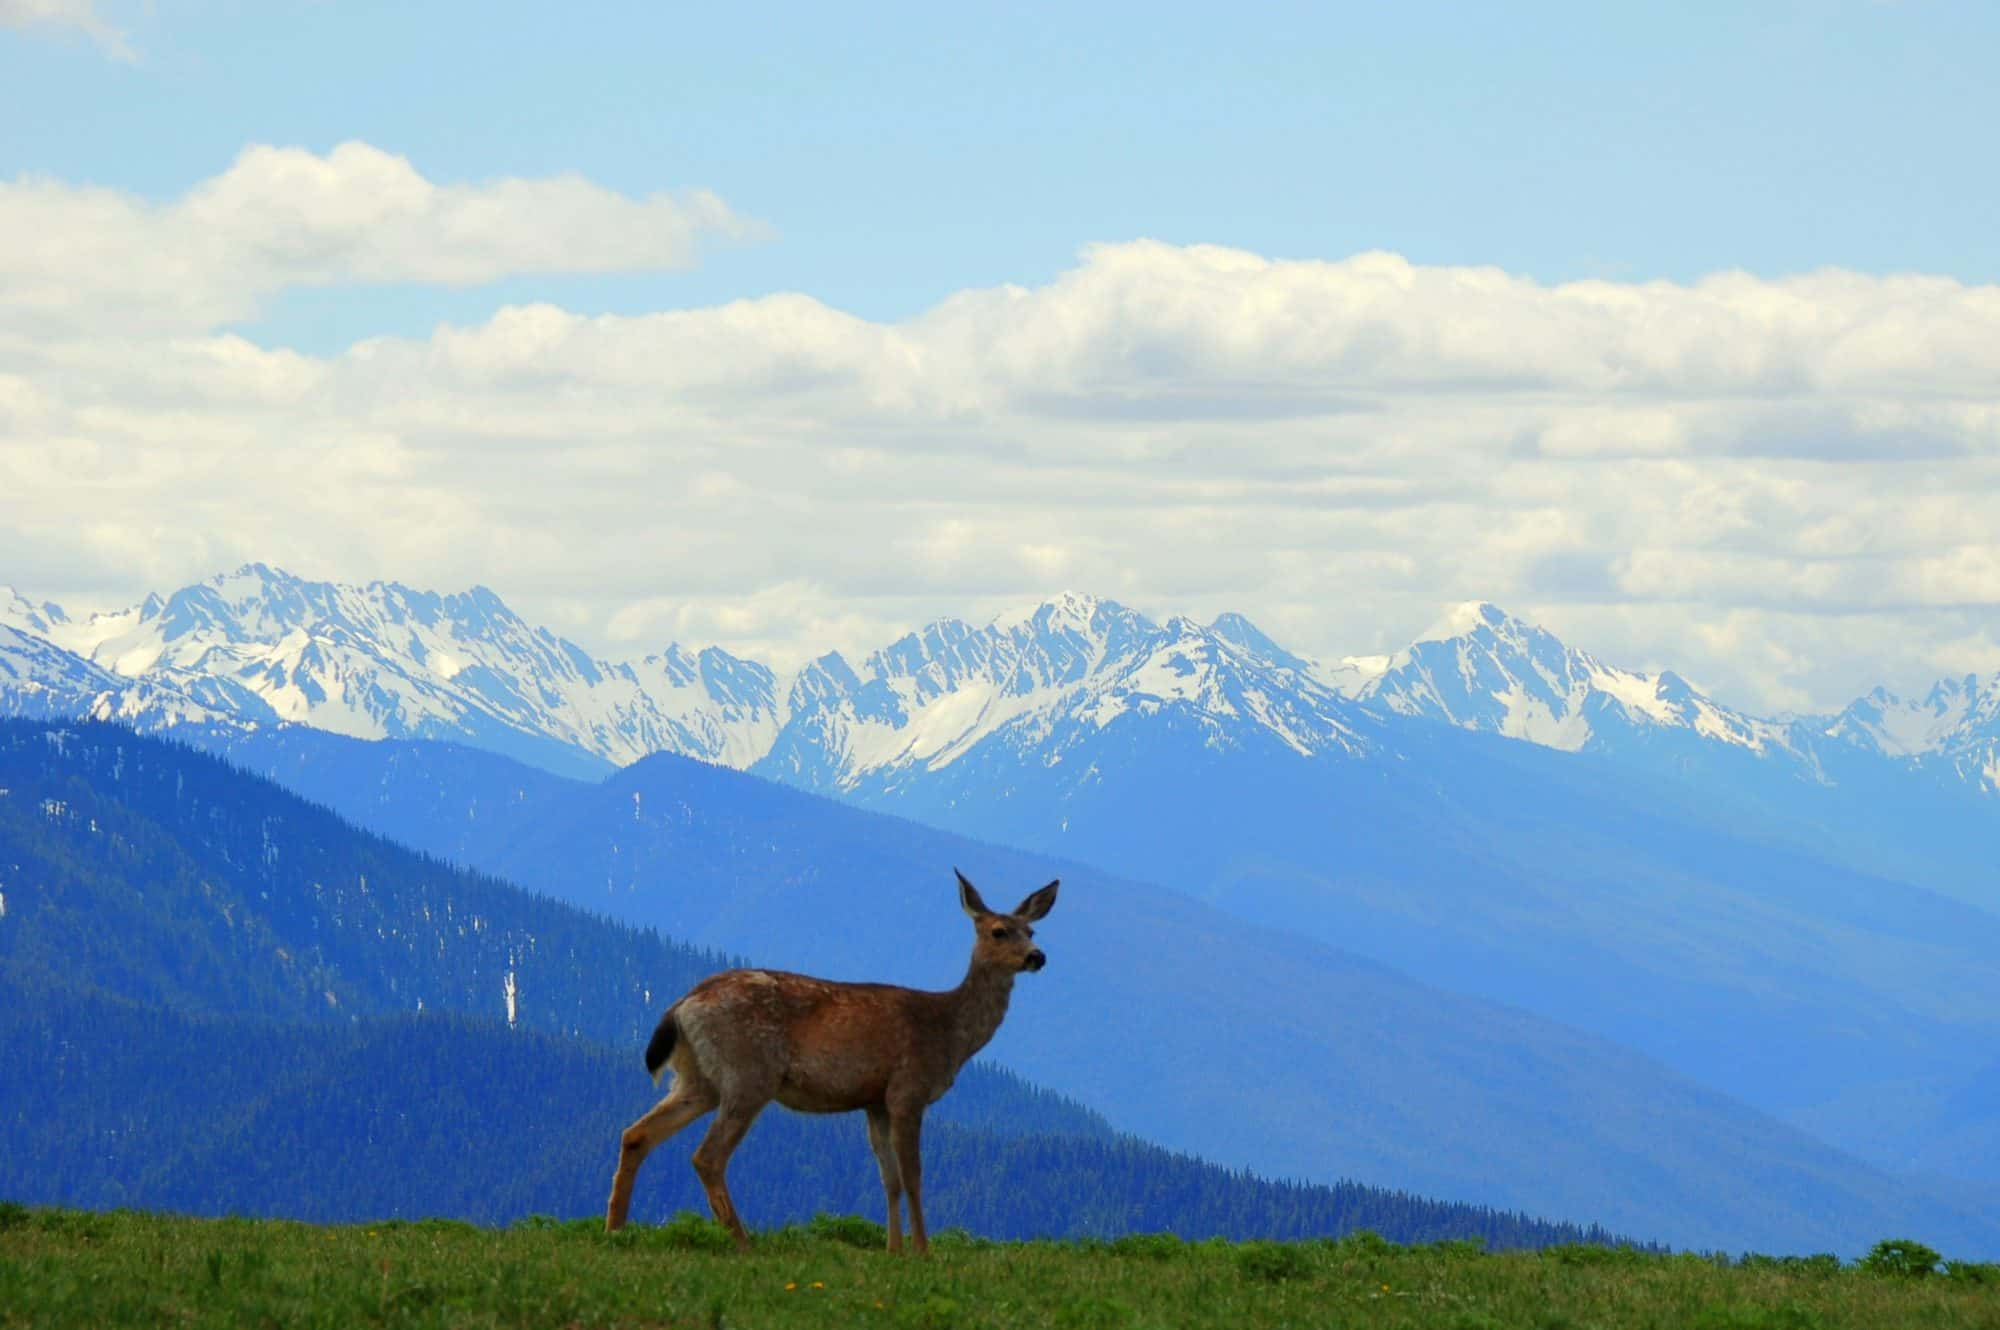 One of the most popular Things to do in Olympic National Park is visit Hurricane Ridge